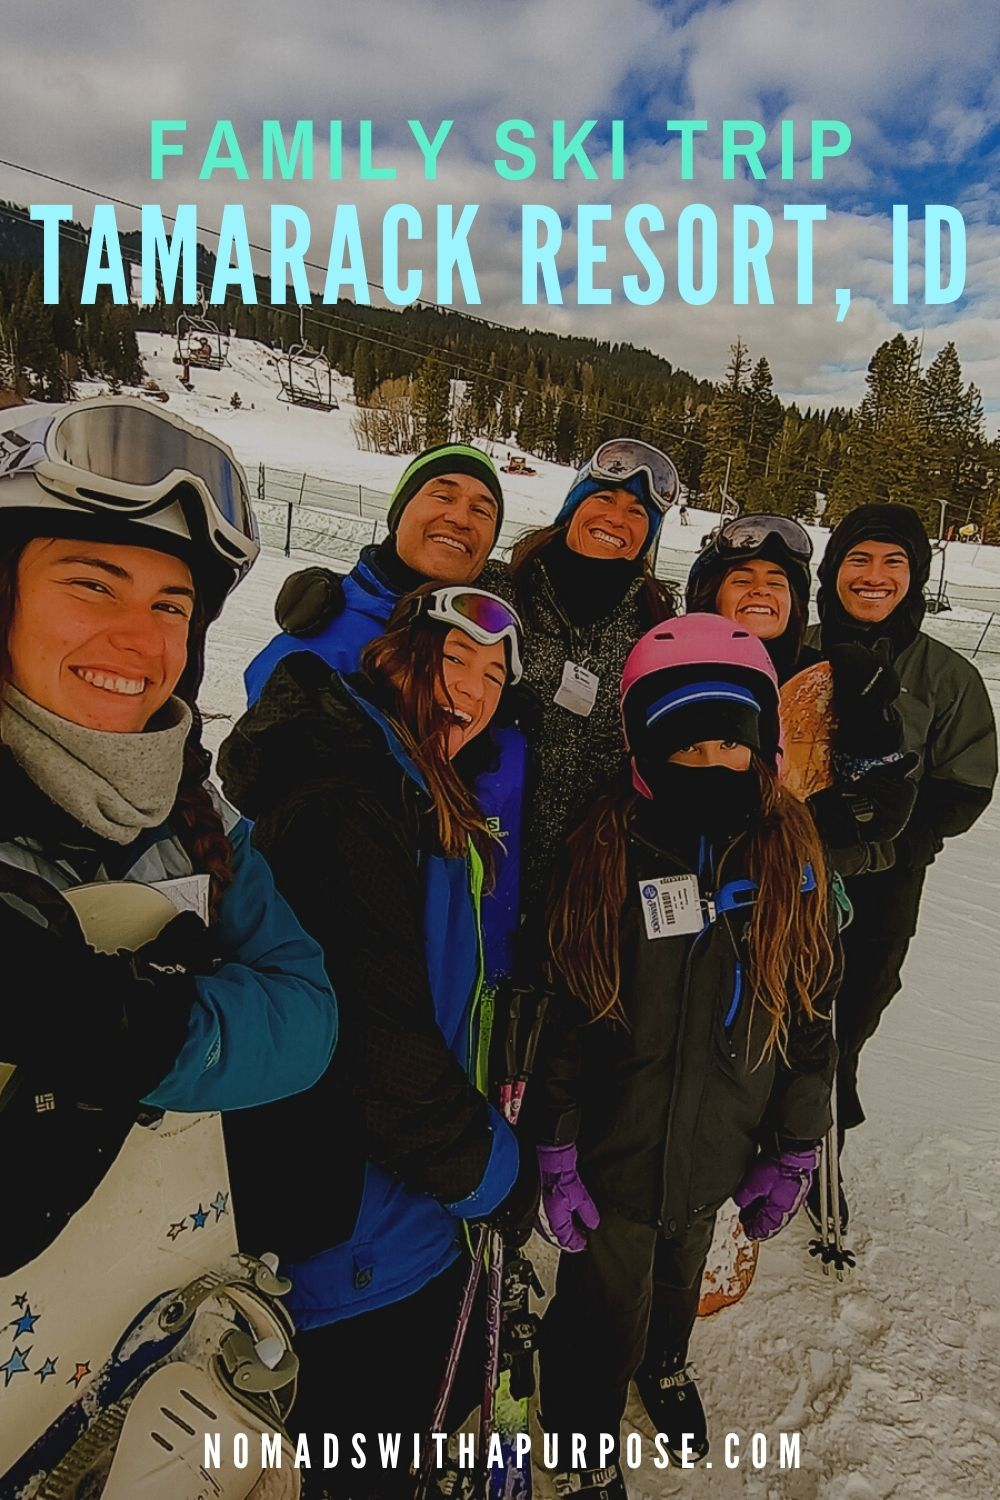 Tamarack Resort, Family Ski Trip, Idaho